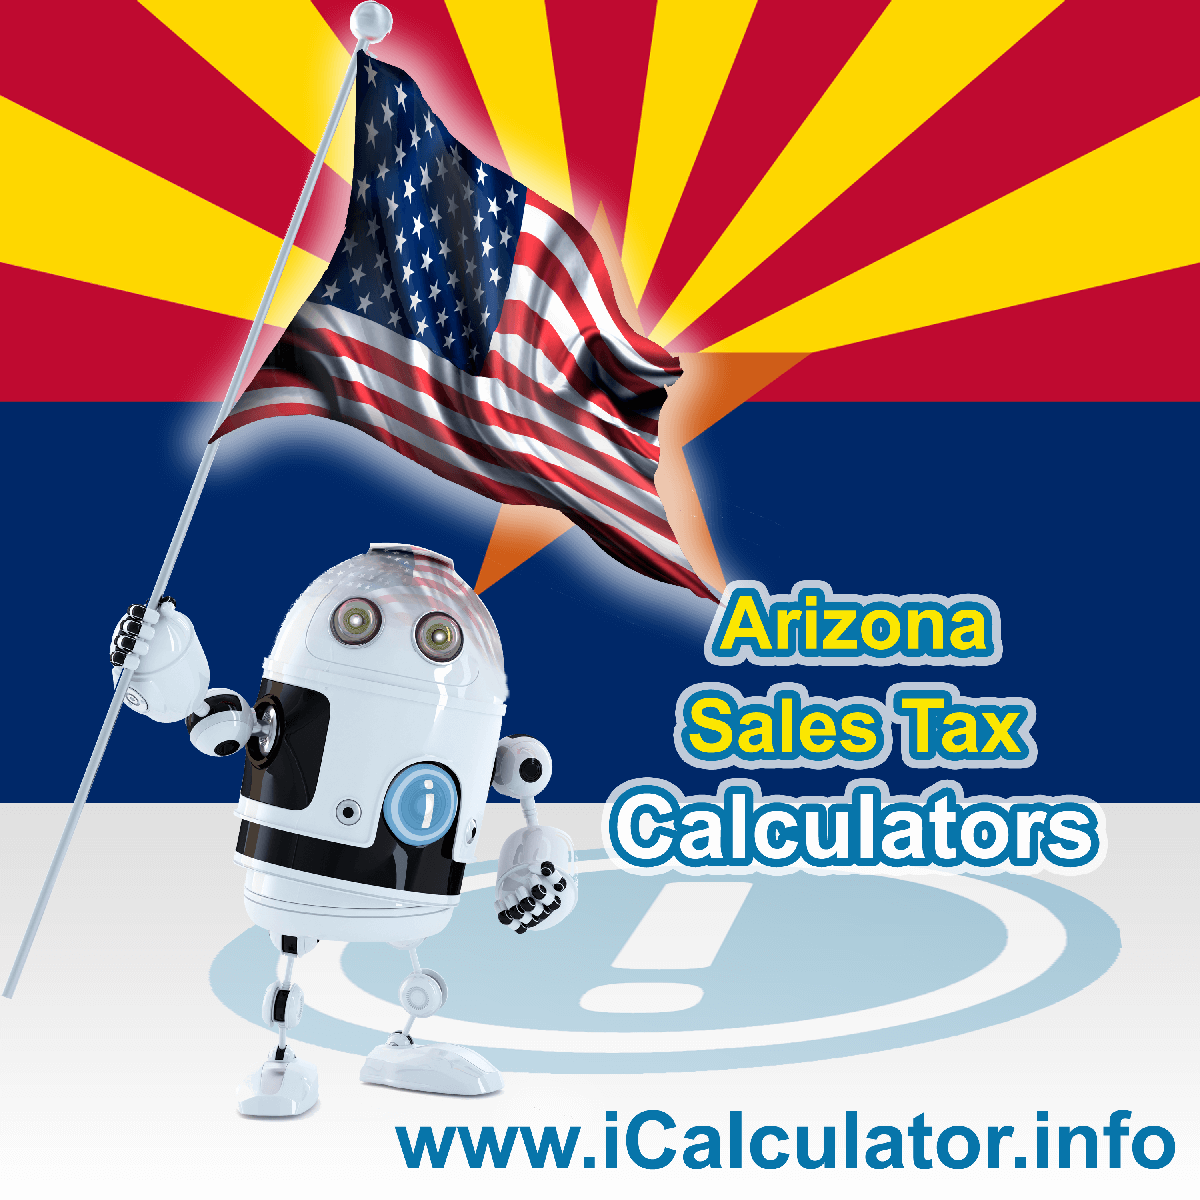 Arizona Sales Tax Comparison Calculator: This image illustrates a calculator robot comparing sales tax in Arizona manually using the Arizona Sales Tax Formula. You can use this information to compare Sales Tax manually or use the Arizona Sales Tax Comparison Calculator to calculate and compare Arizona sales tax online.